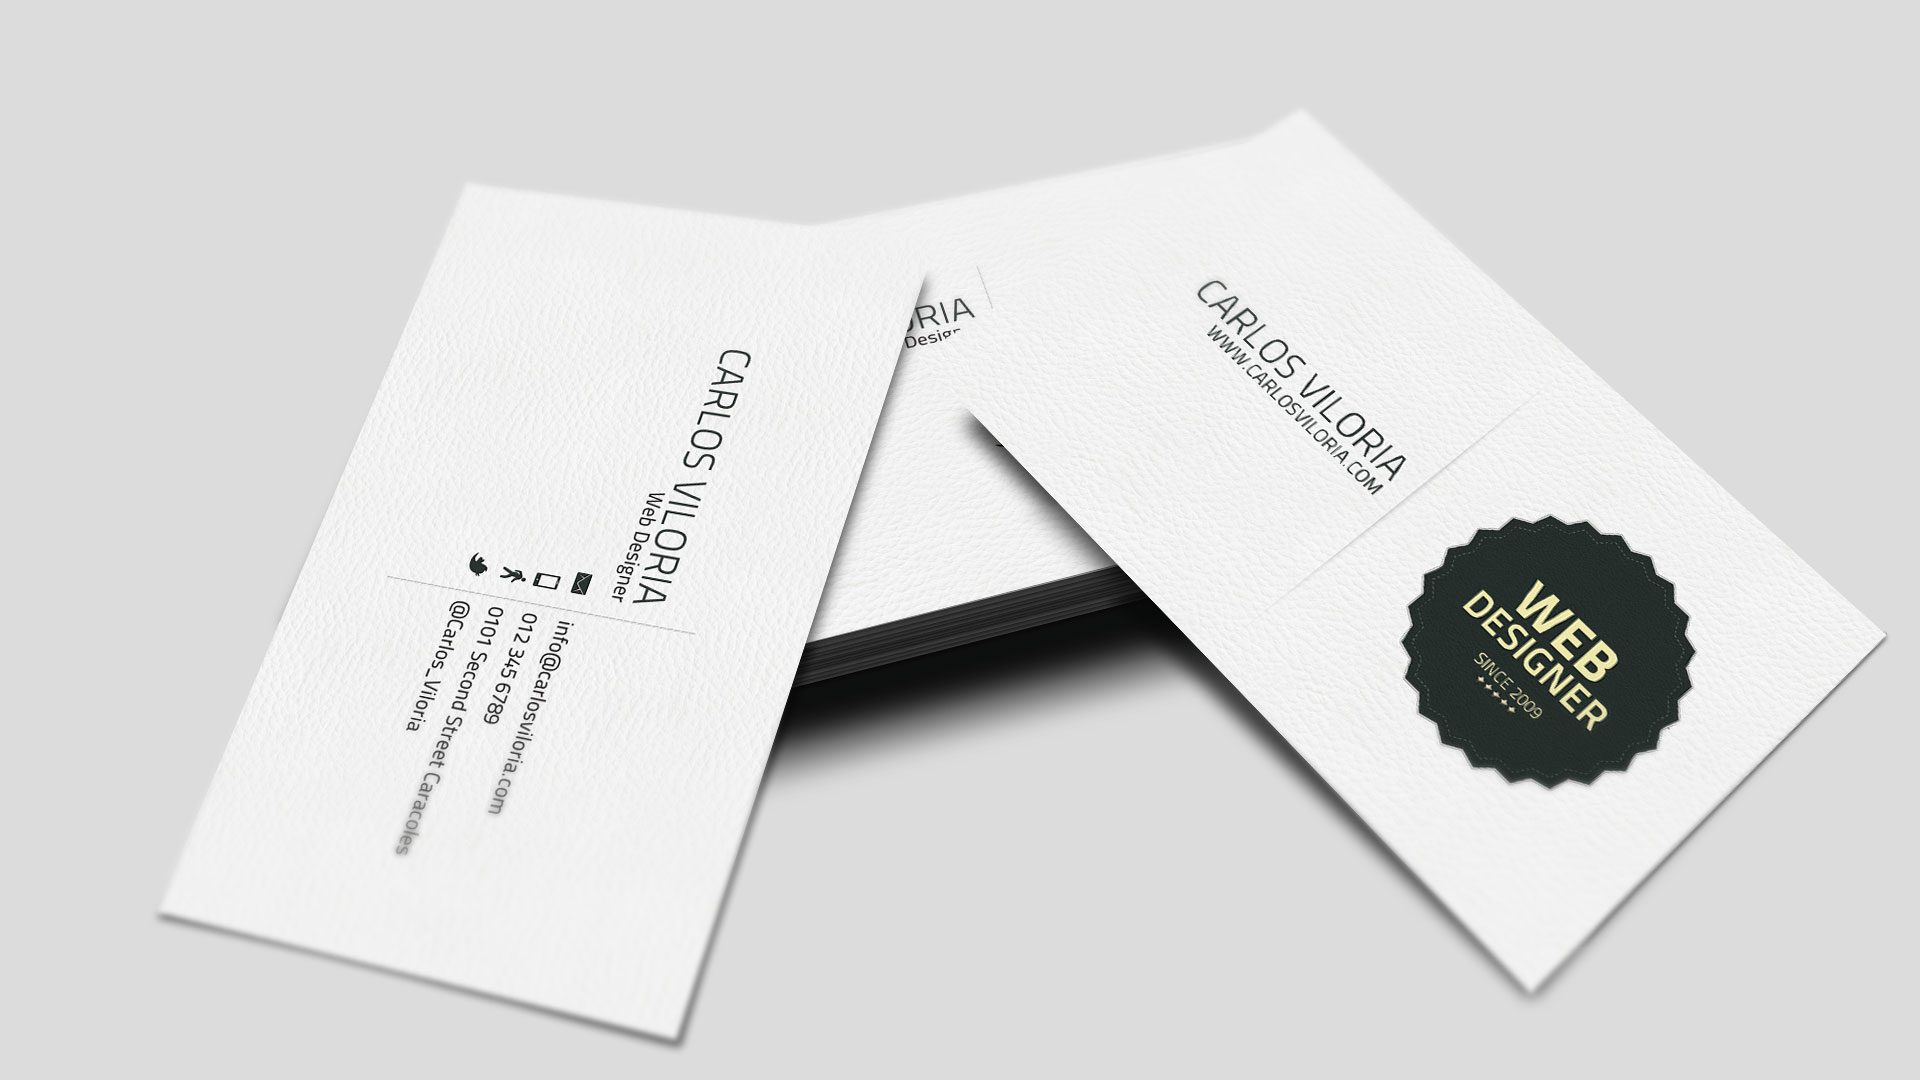 retro business card 02 preview www carlosviloria com 1 20 Free Business Card Templates